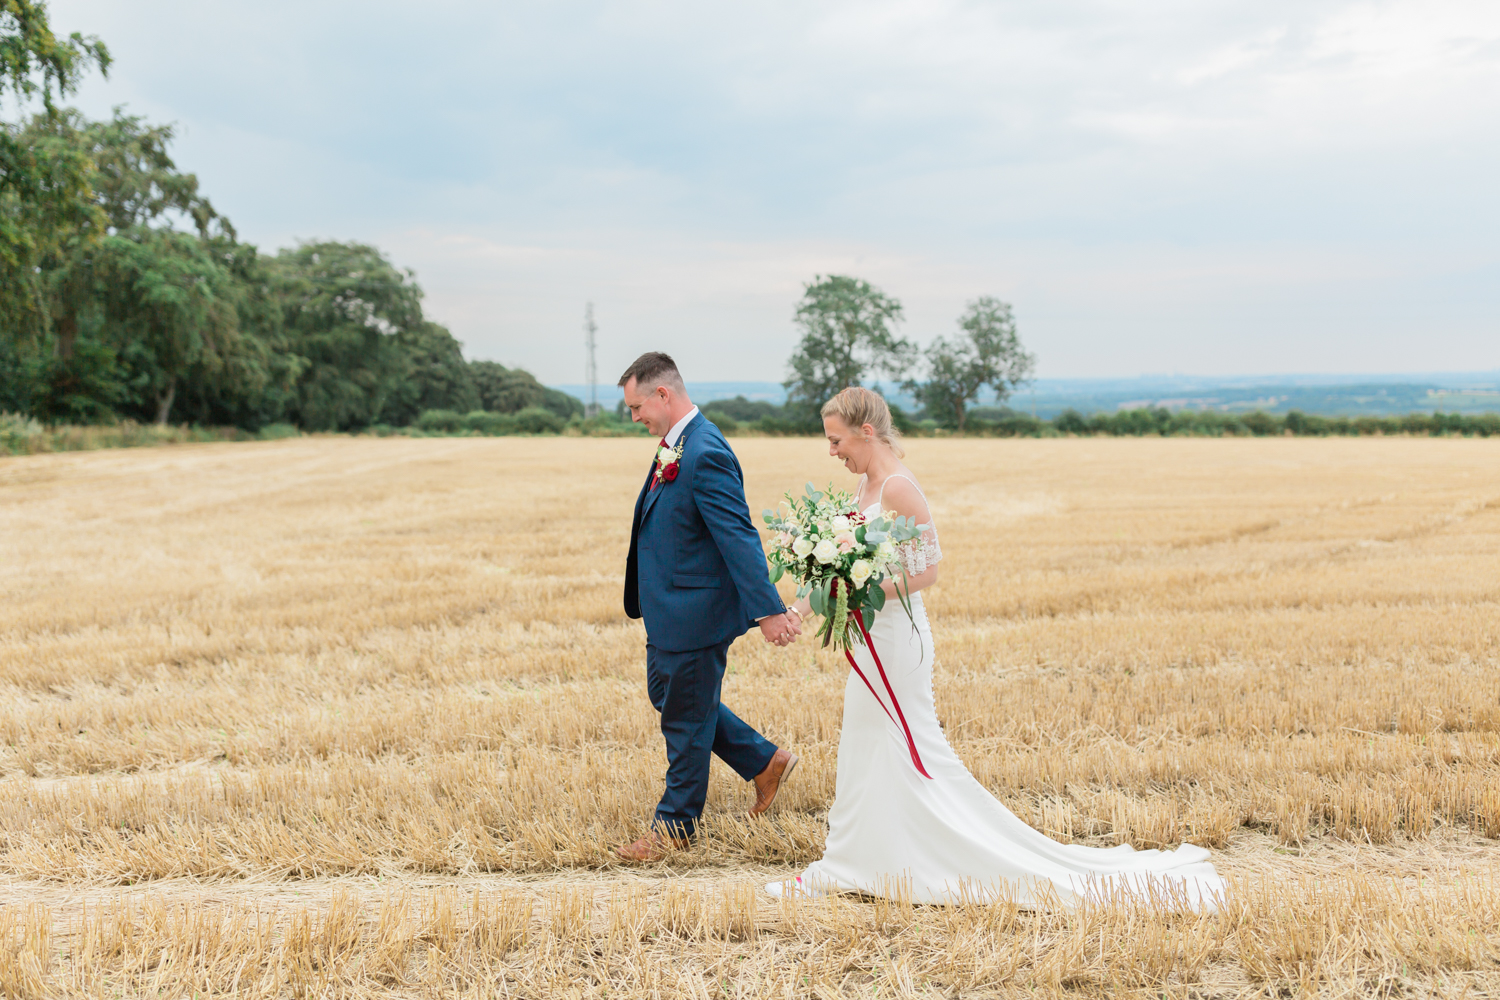 CHRIS & LEANNE | WOOLLEY EDGE VIEW WEDDING